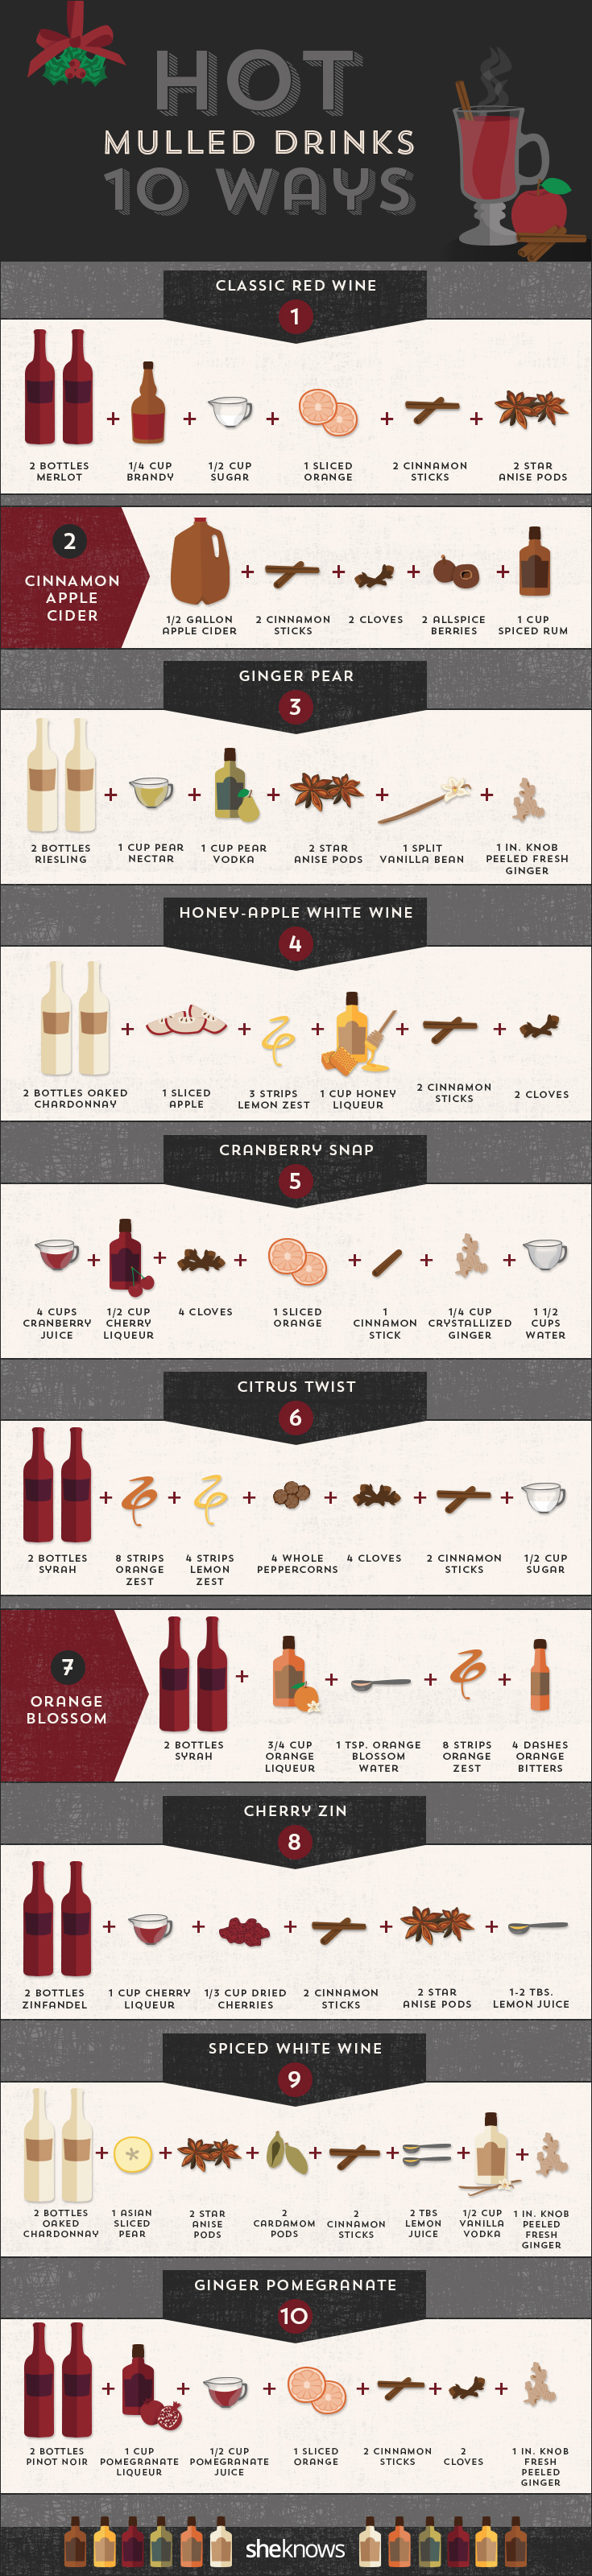 how to make mulled drinks